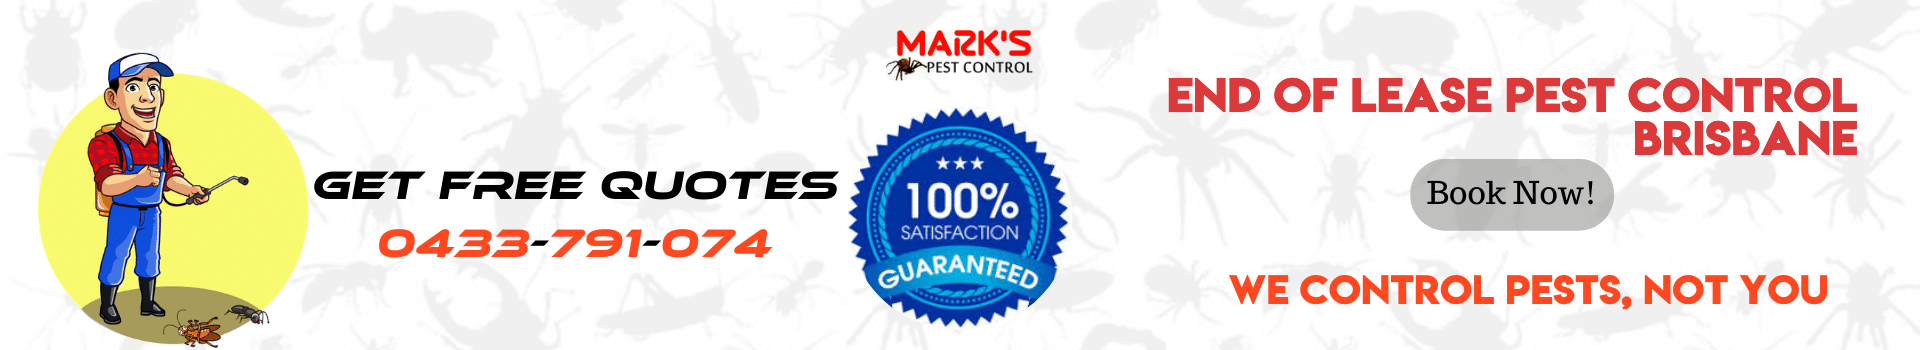 End Of Lease Pest Control Brisbane